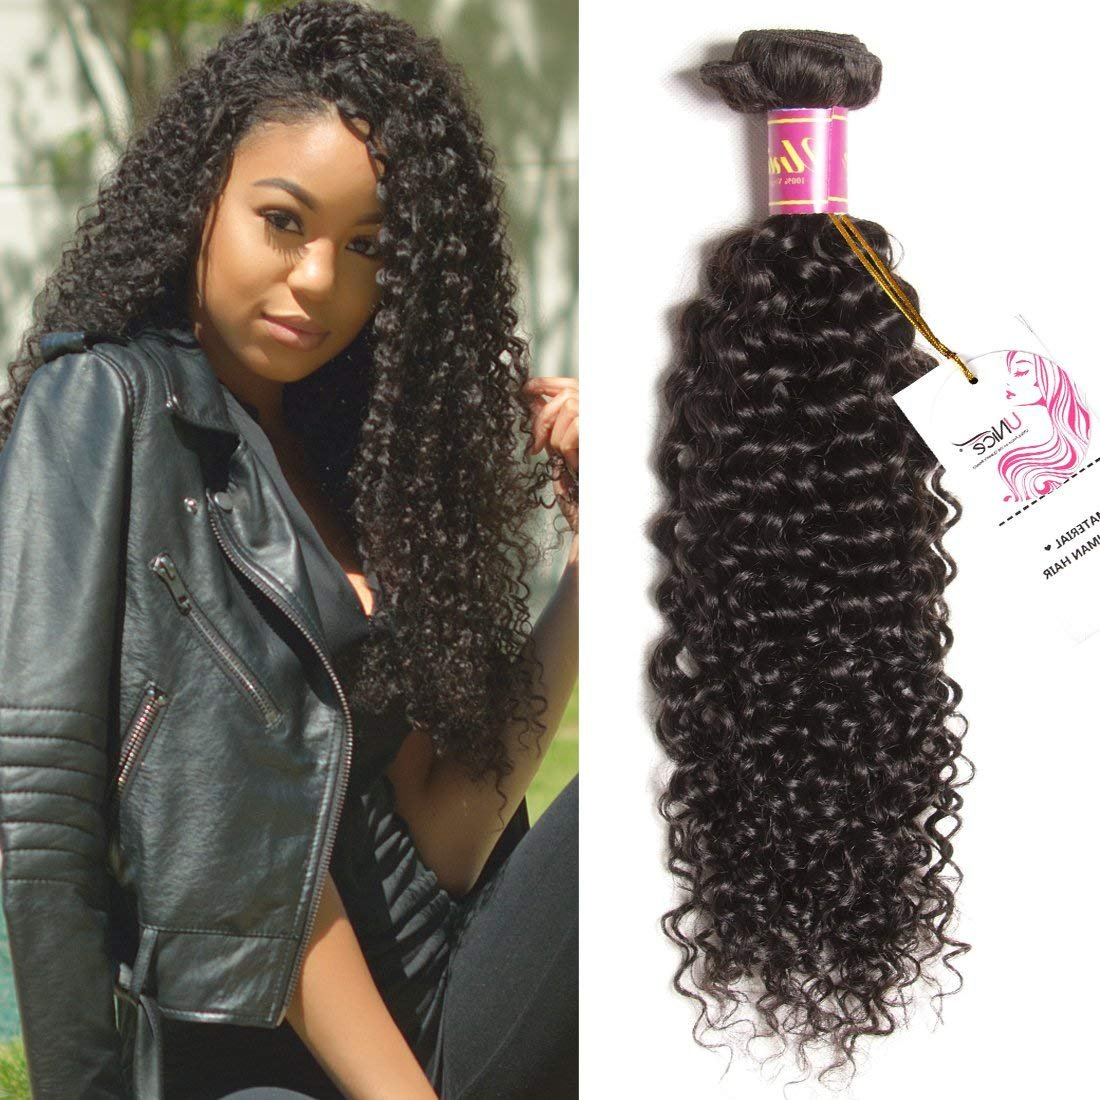 Amazon Unice 8a Brazilian Virgin Hair 1 Bundle Of Curly Hair